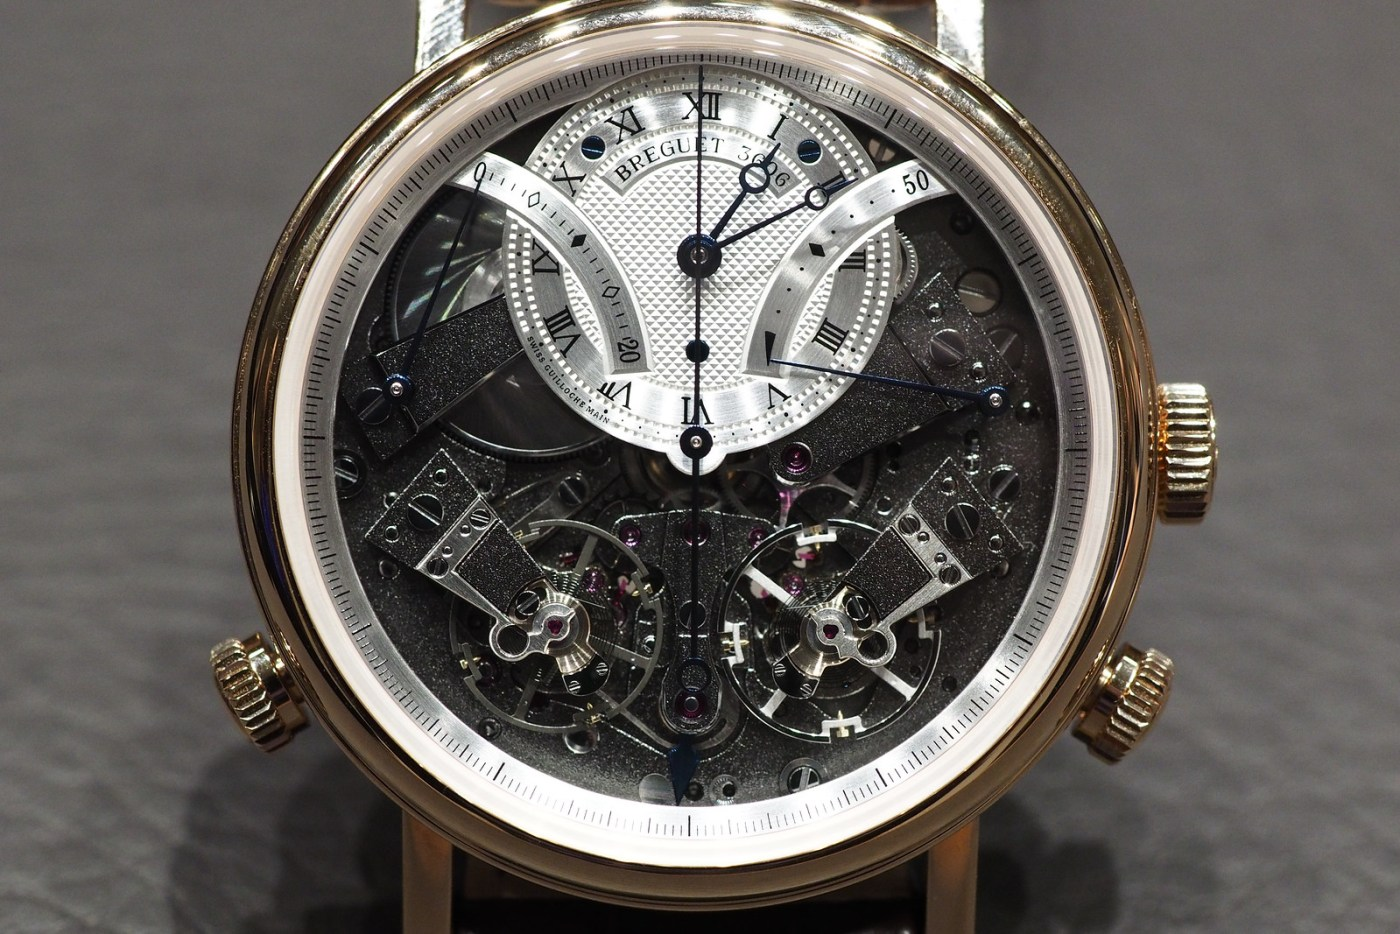 Breguet at Baselworld 2015